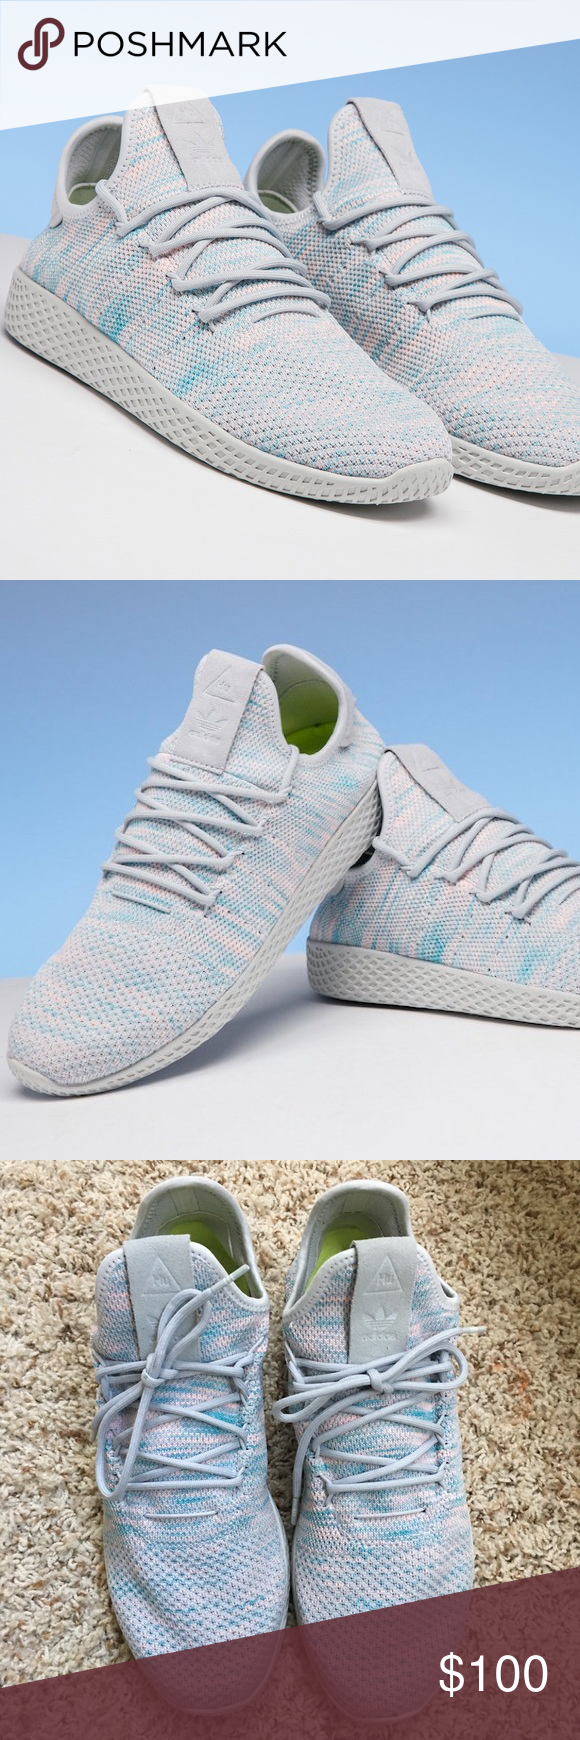 Pharrell Williams X Tennis Hu Scarpe Adidas